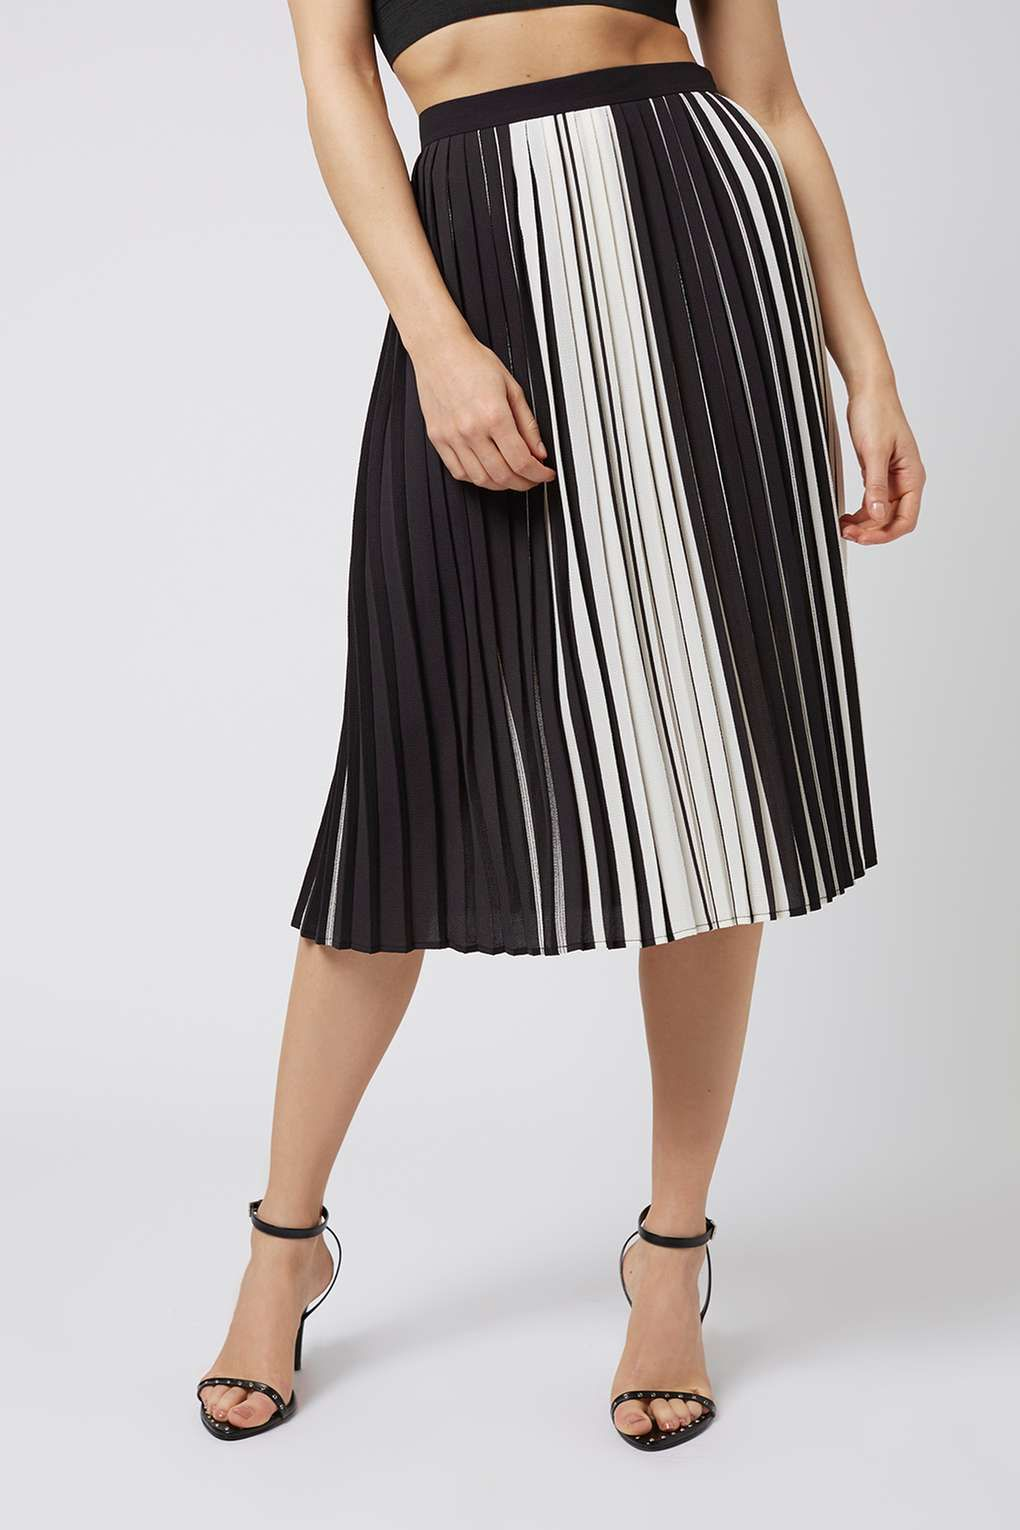 Pleated Midi Skirt - Silver foil Love Sale Real Clearance Pay With Visa Pay With Visa Cheap Price Online Sale Manchester For Sale uY2PQE5m